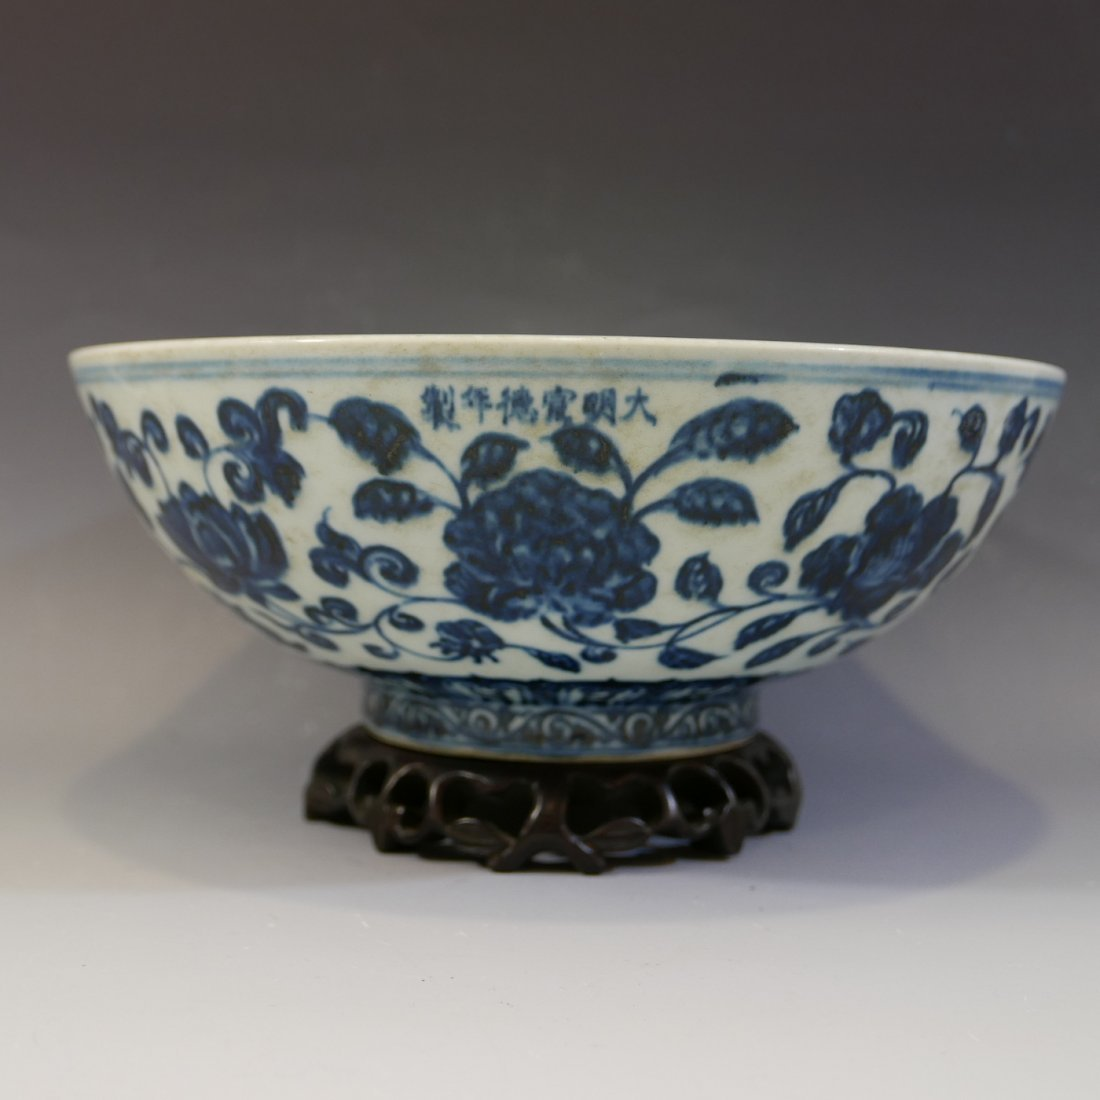 IMPORTANT CHINESE BLUE AND WHITE PORCELAIN BOWL -